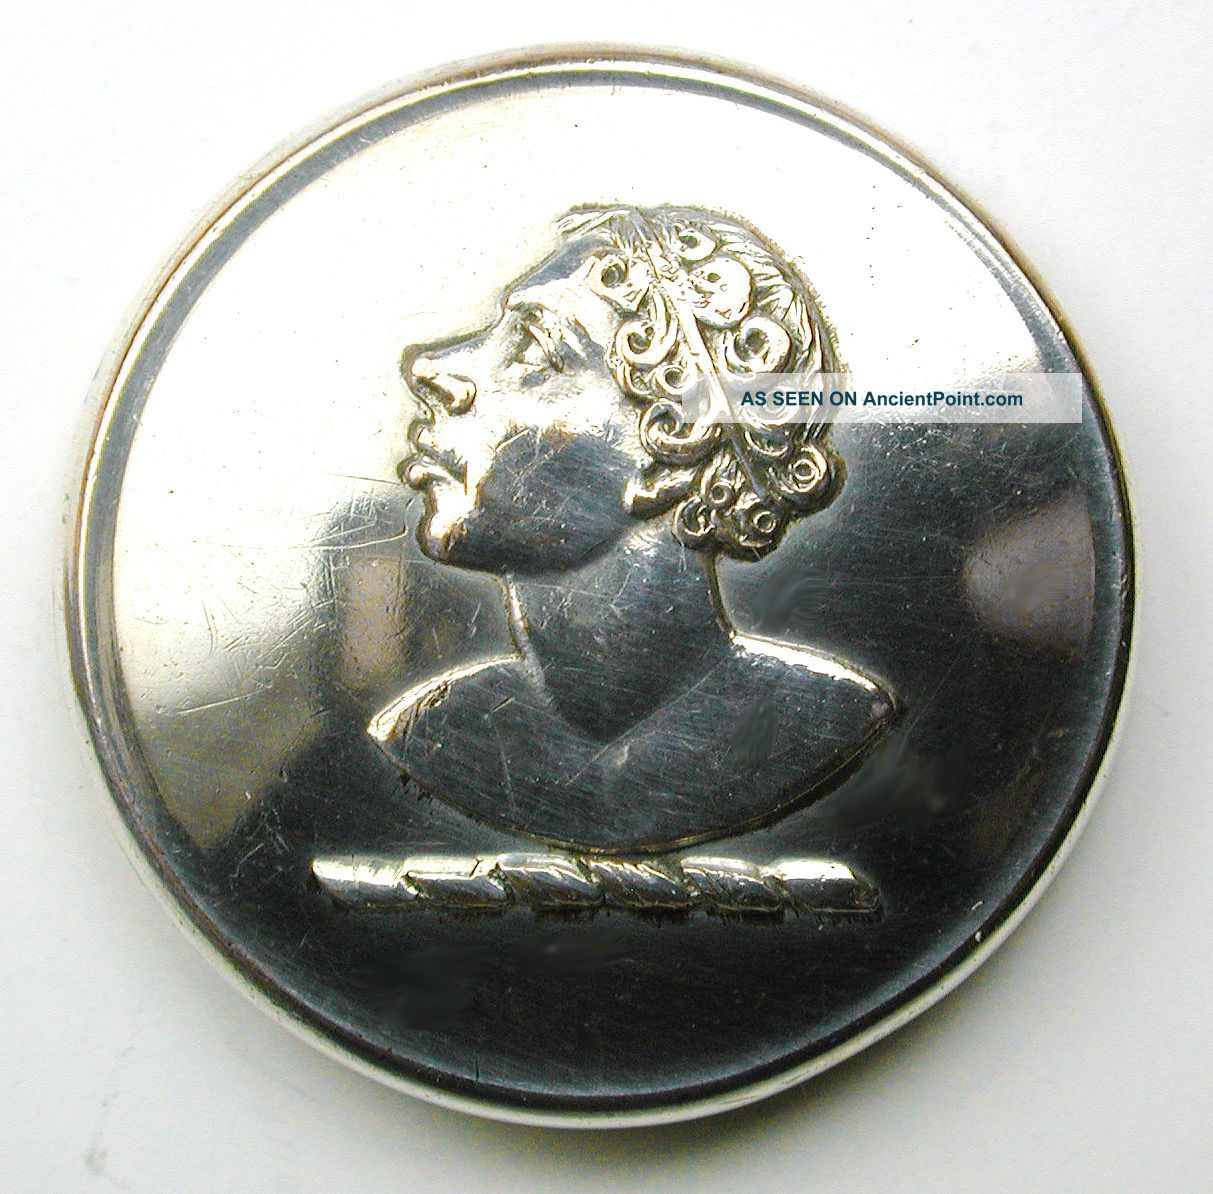 Antique Silver On Copper Livery Button - Man In Profile - Bullivant - 15/16